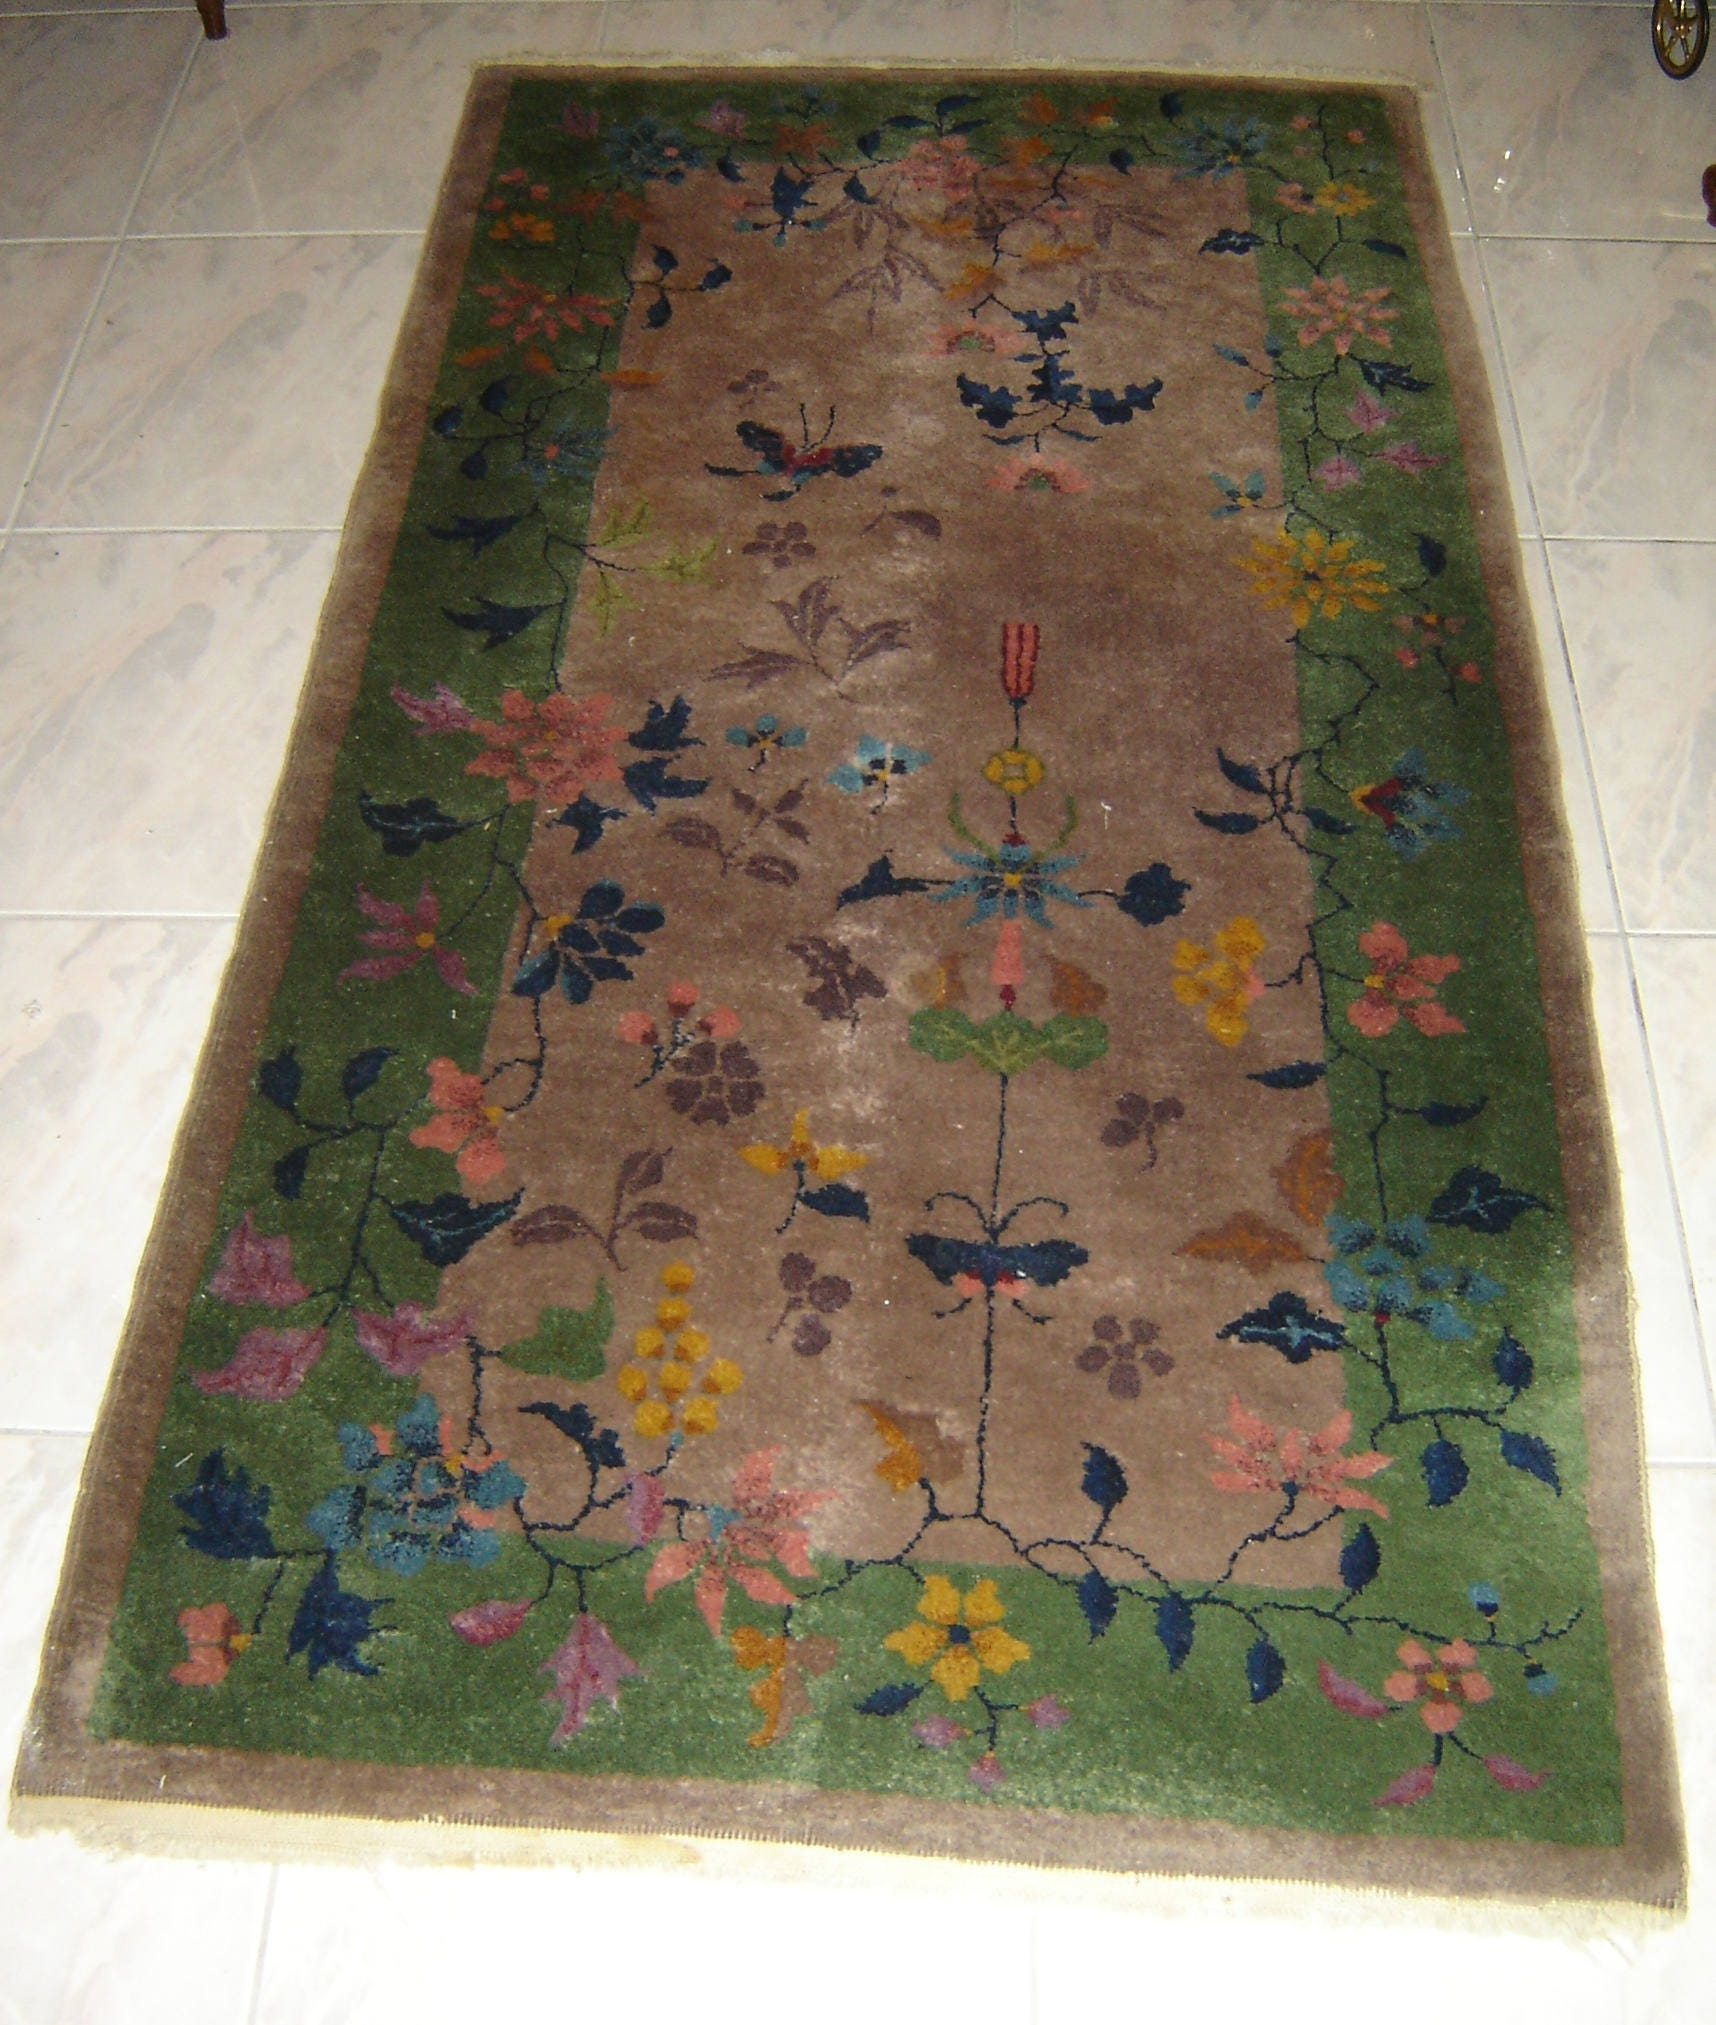 Antique Chinese Art Deco Carpet Rug Woven Wool 38 X